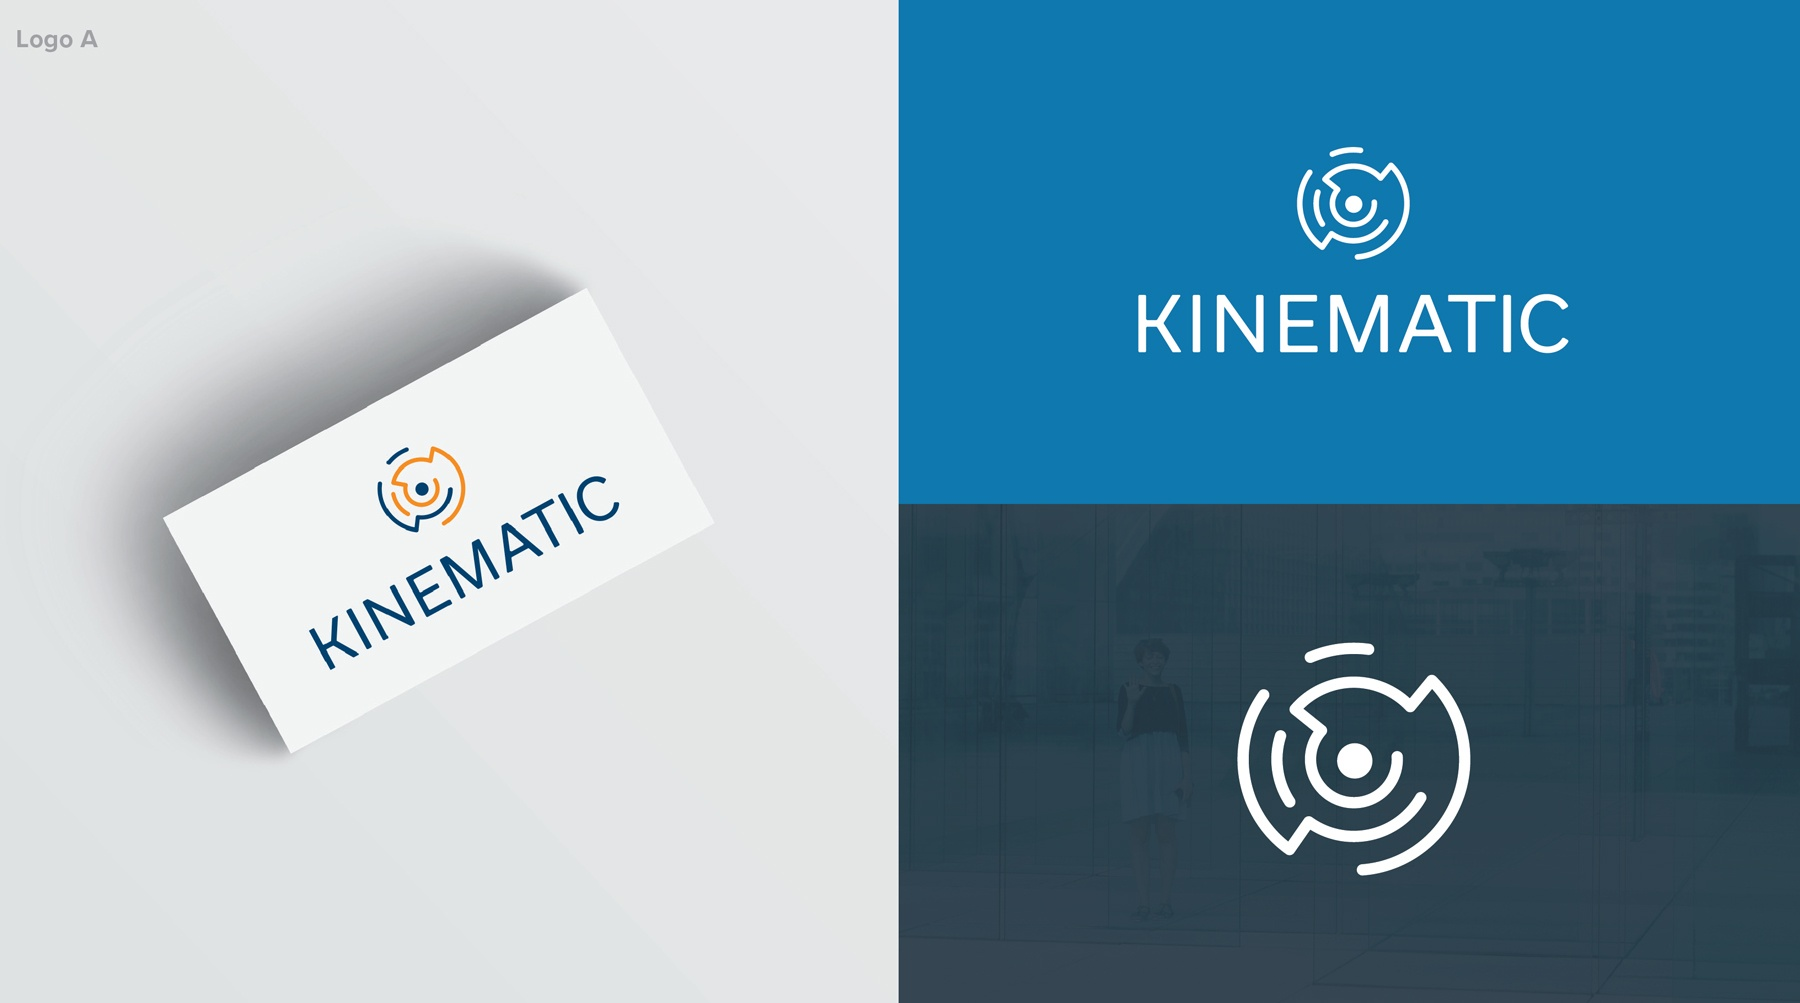 A screen of the vertical Kinematic logo on a business card